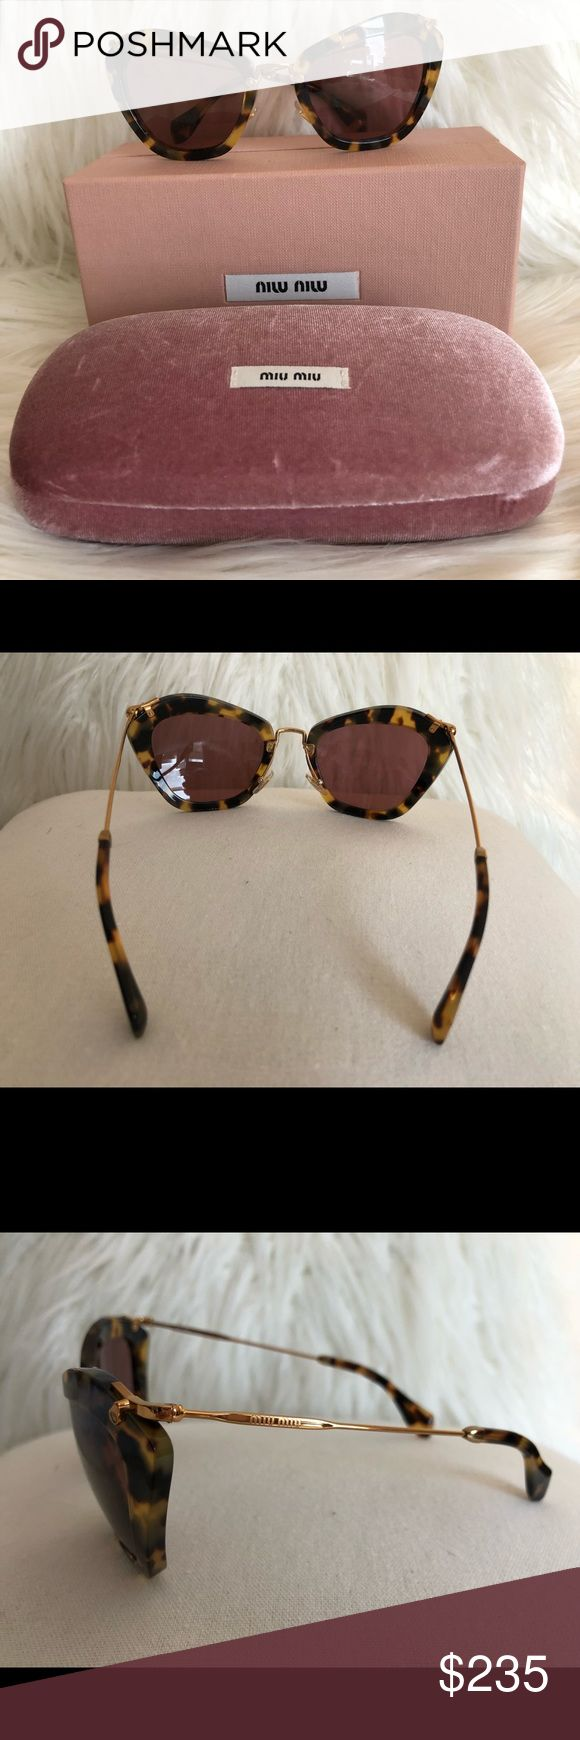 Miu Miu Tortoise Cat Eye Sunglasses New like condition worn only a couple of times.  It's Miu Miu version of a cat eye sunglass in a beautiful tortoise frame. Comes with iconic box, case.  Theses are  very classy and will mover go out of style.  I will consider all offers. Miu Miu Accessories Sunglasses